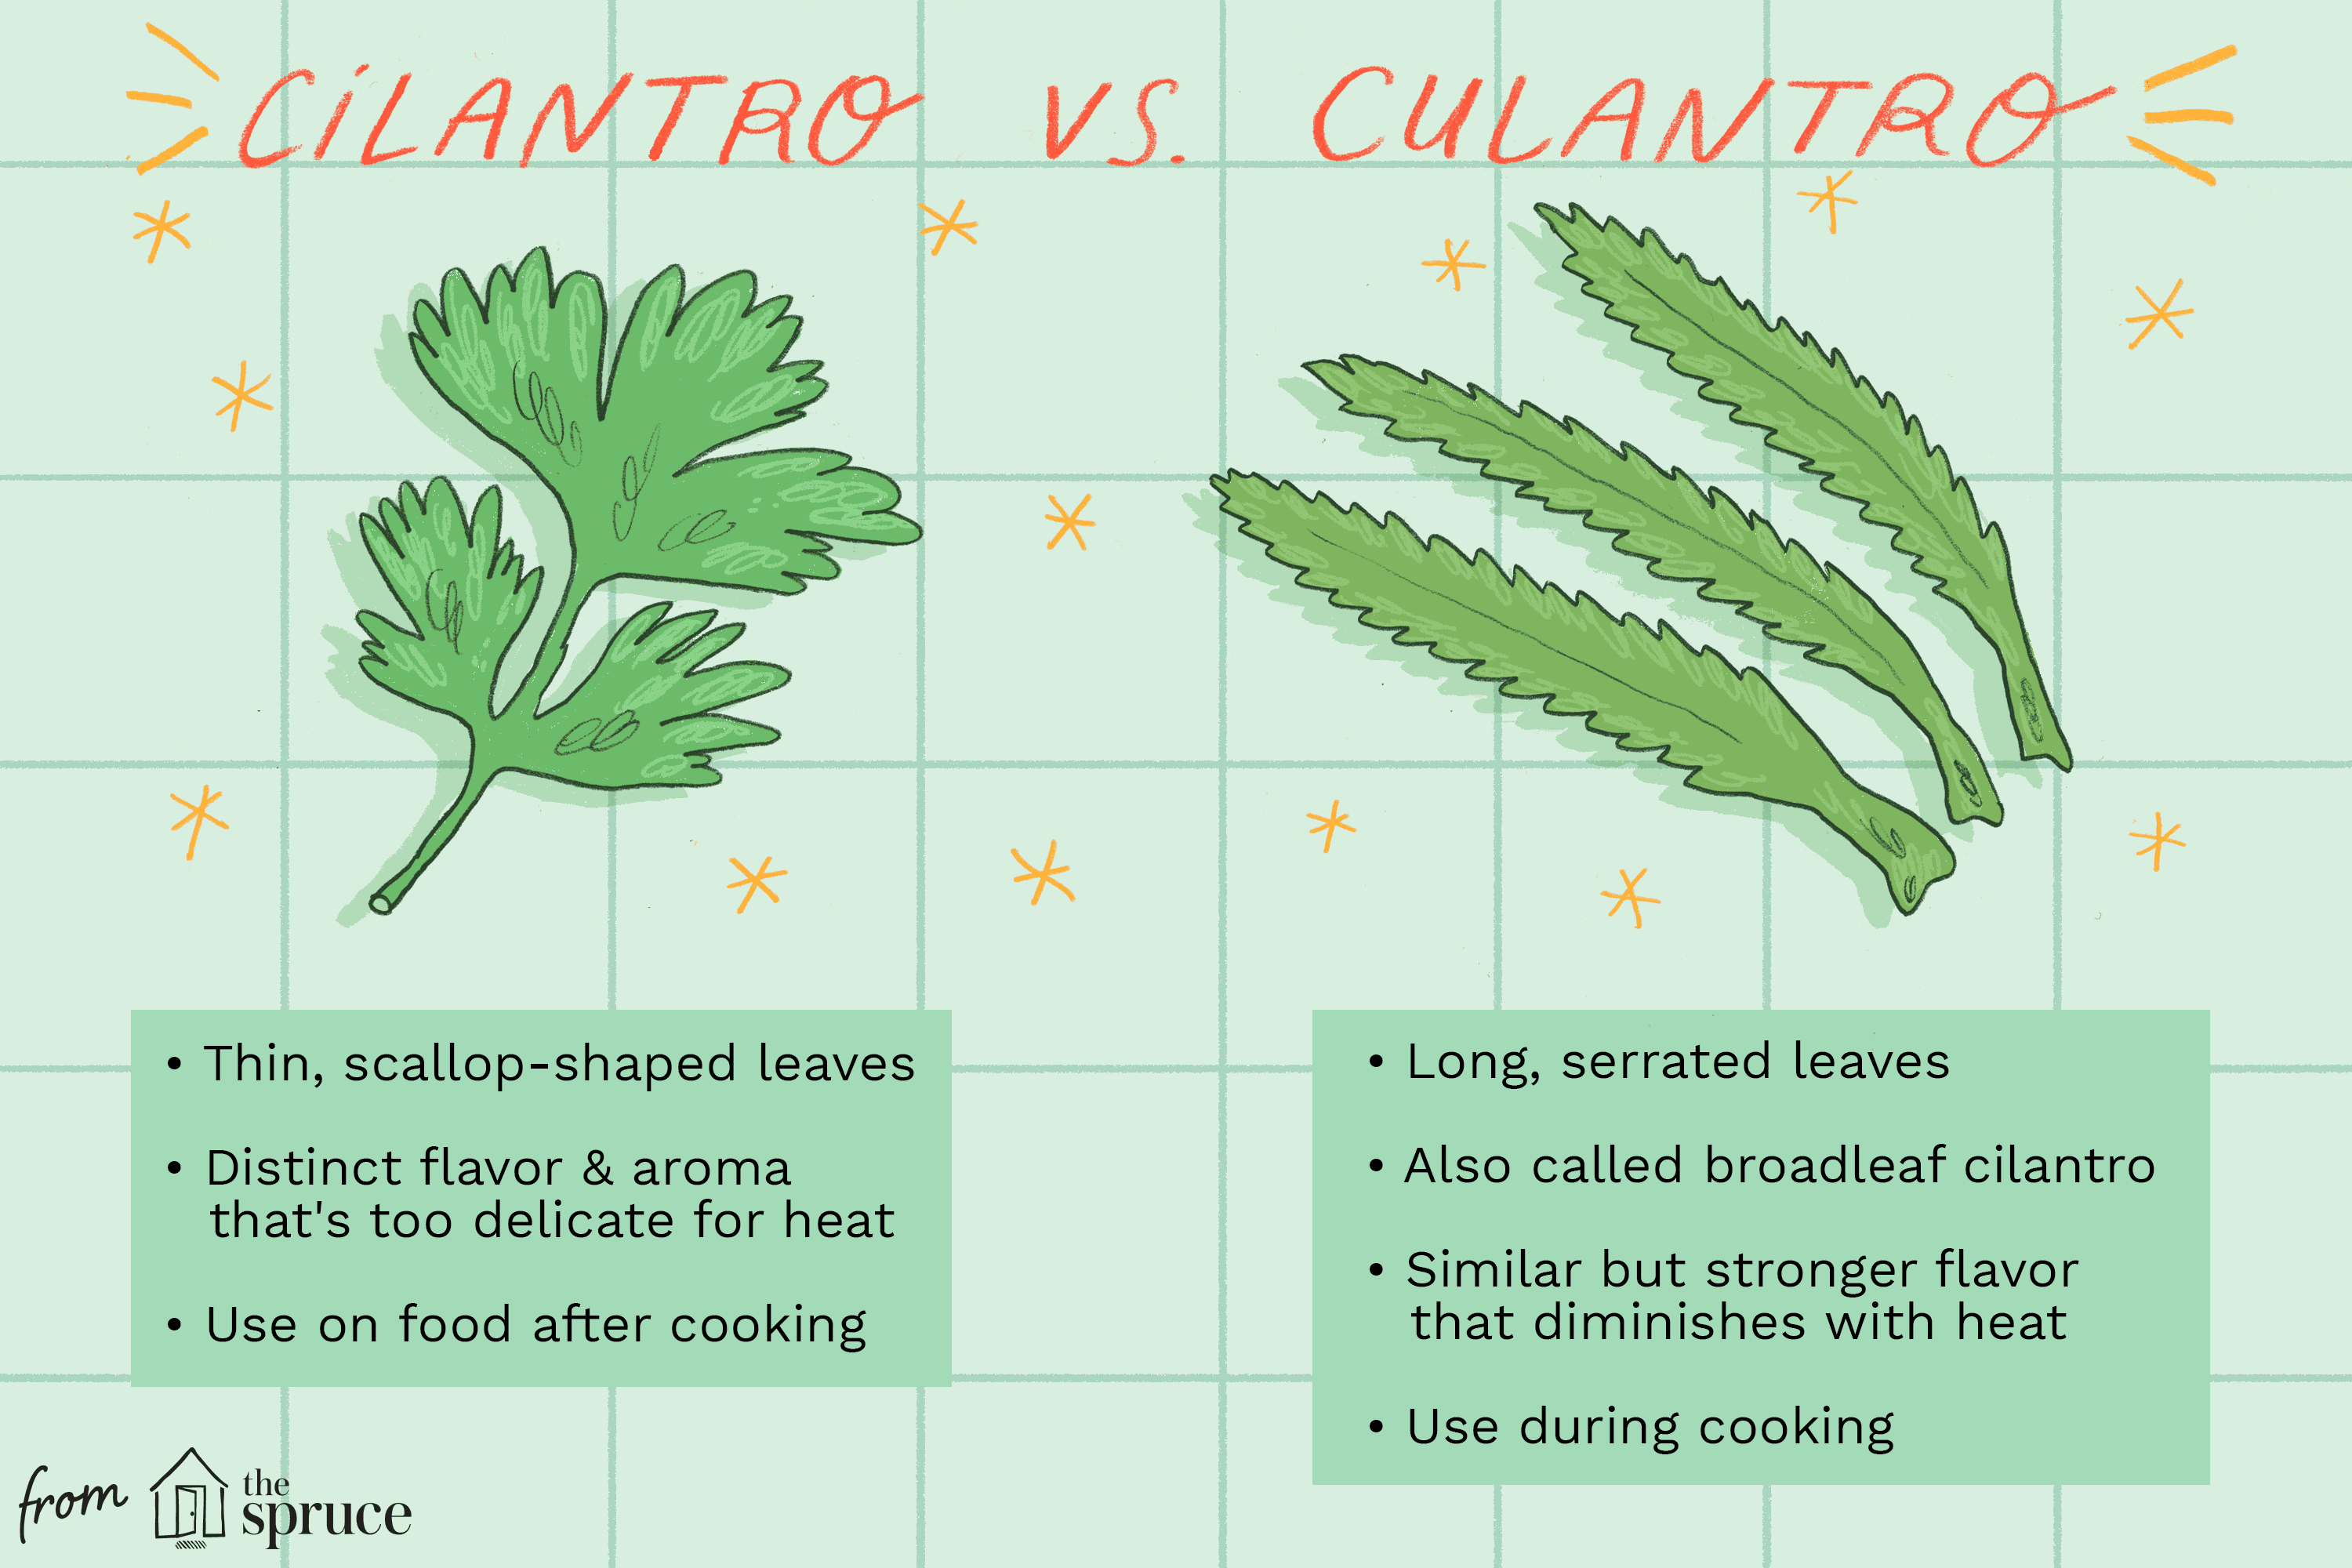 What Is Culantro and How Is It Used?